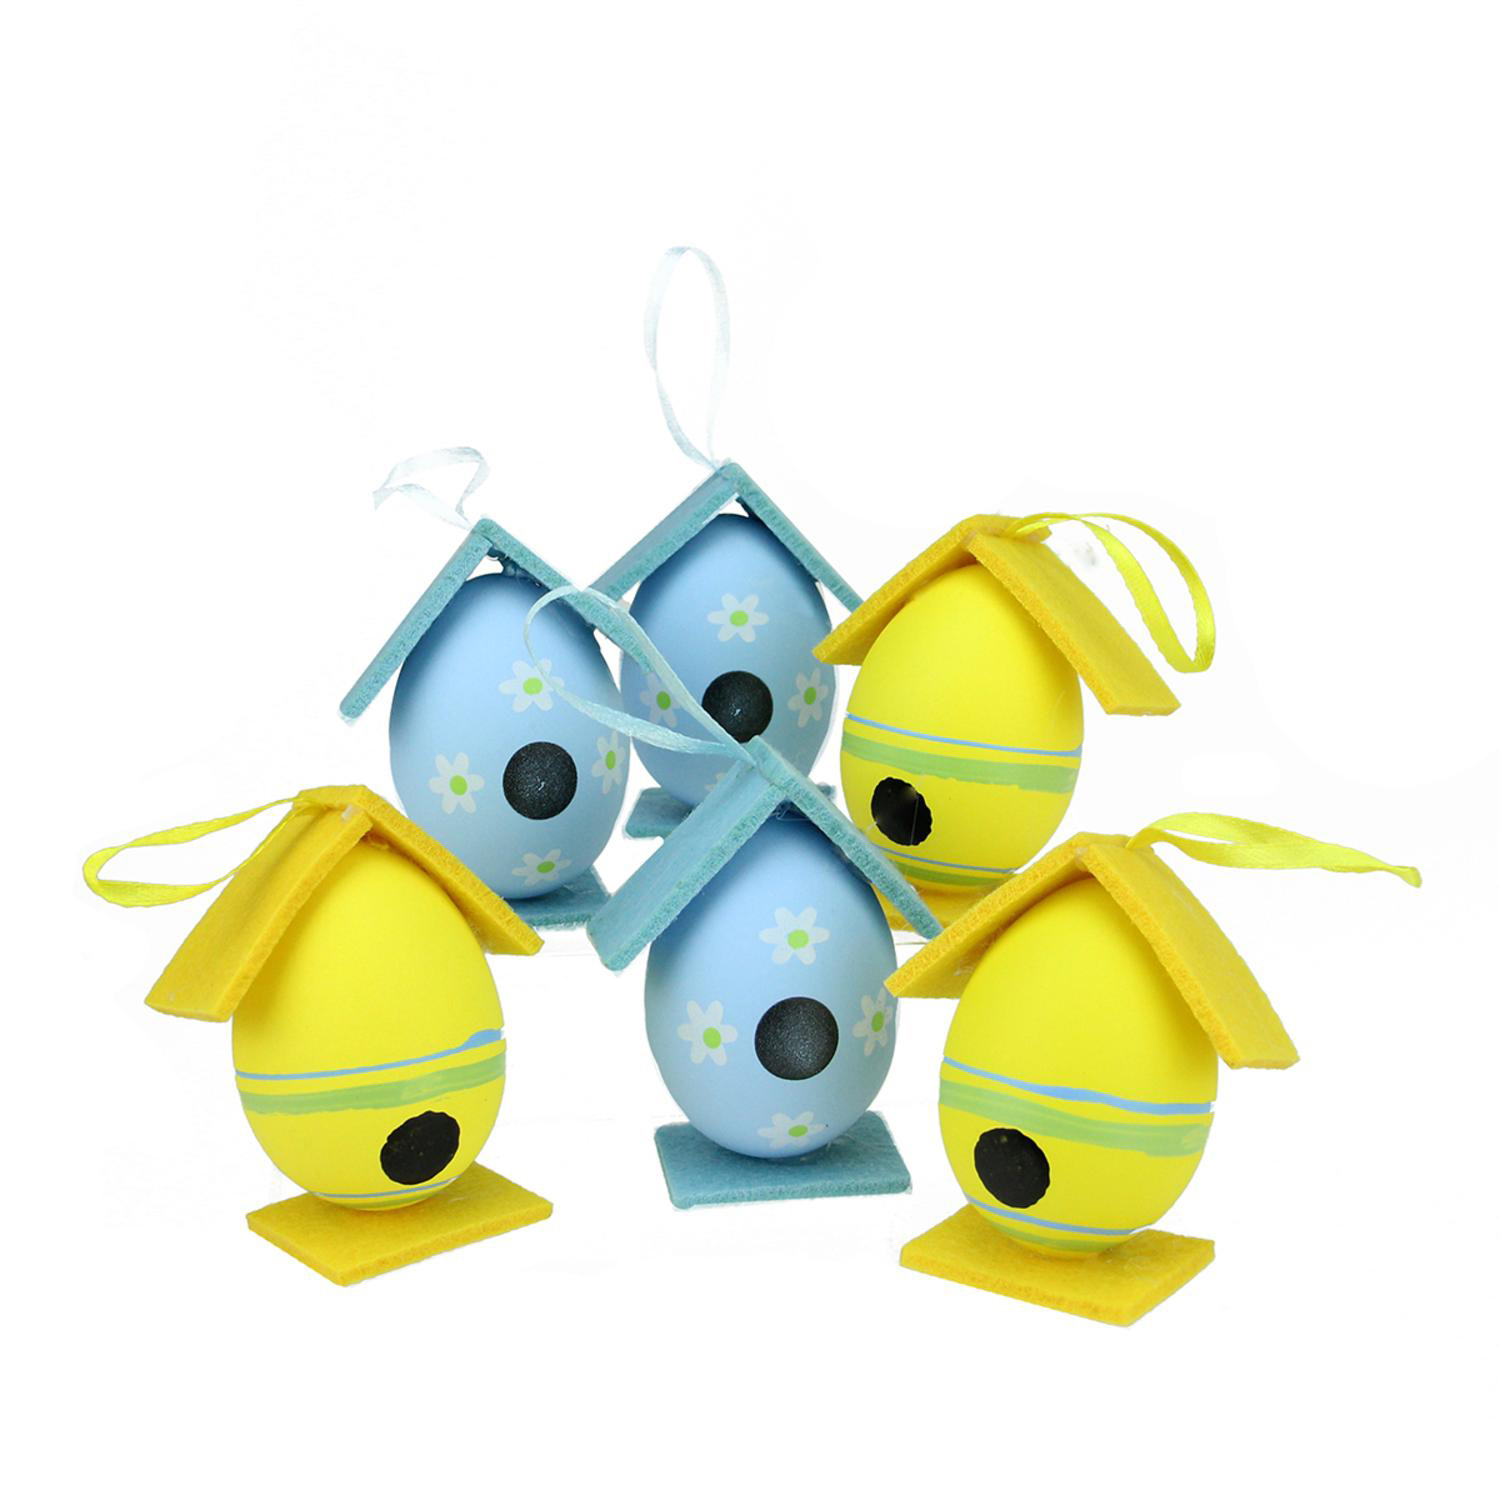 "3"" Yellow & Blue Decorative Painted Easter Egg Birdhouse Ornaments Set of 6"